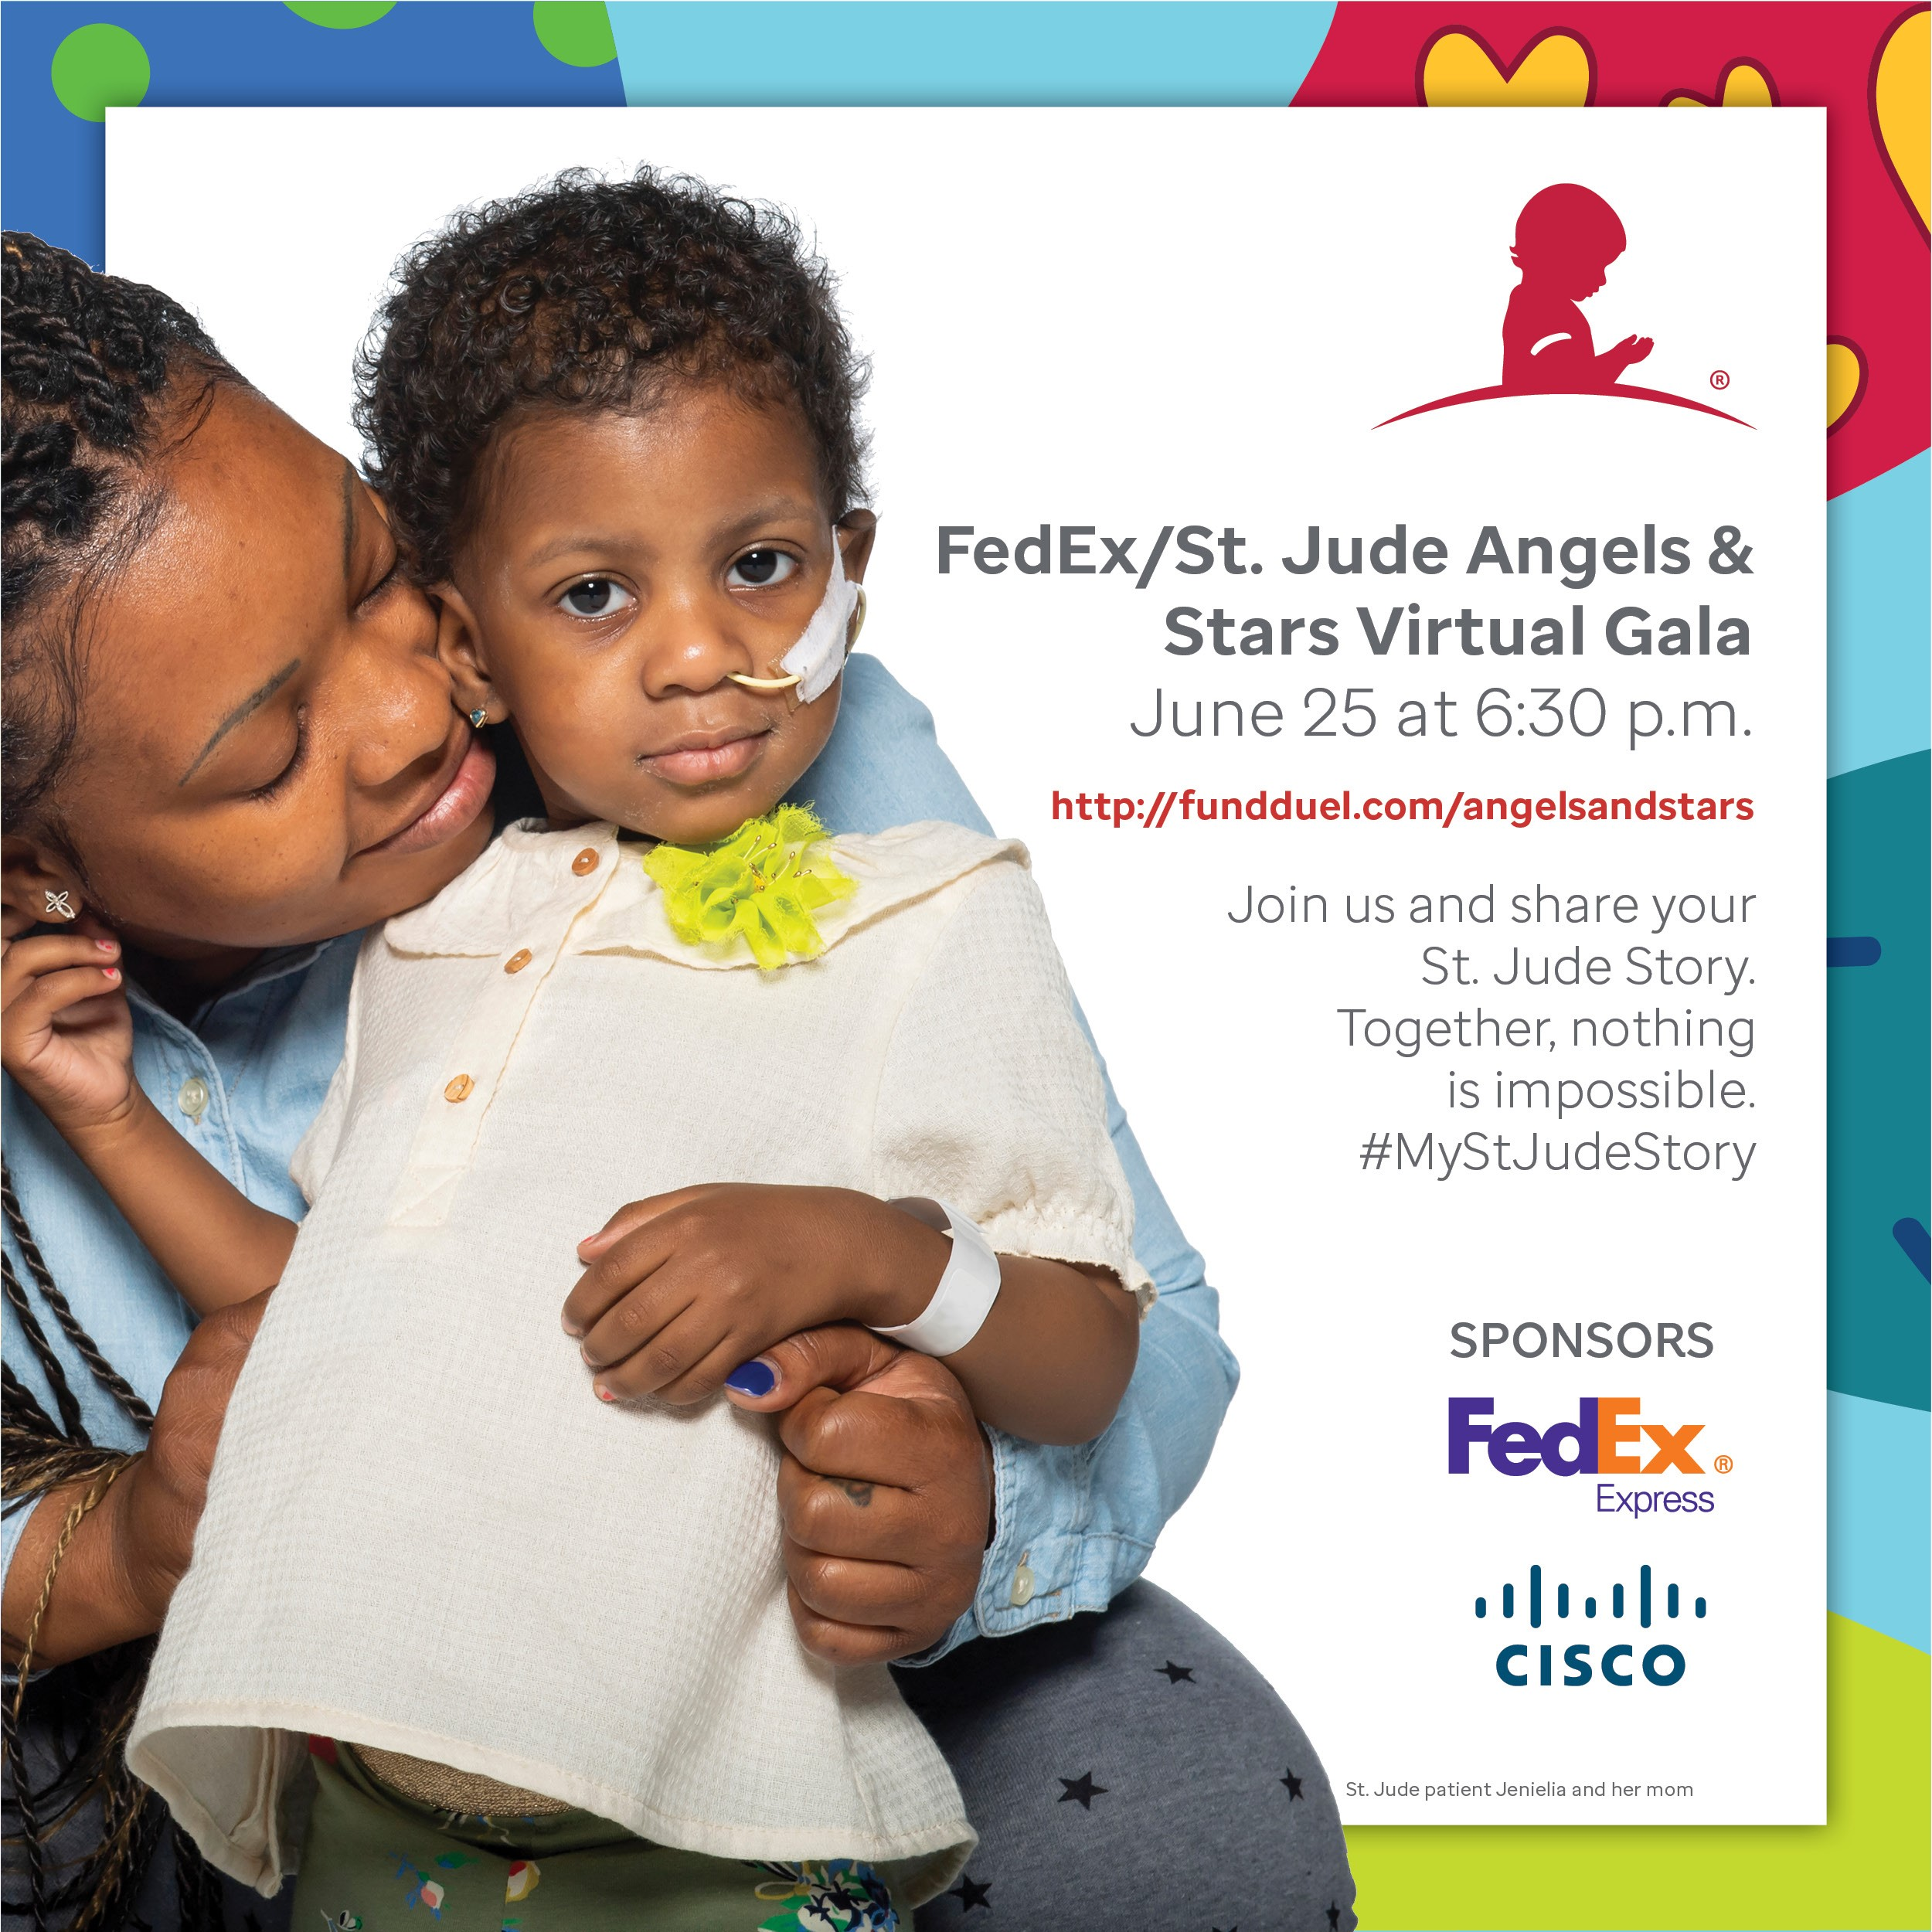 FedEx/St. Jude Angels and Stars Virtual Gala